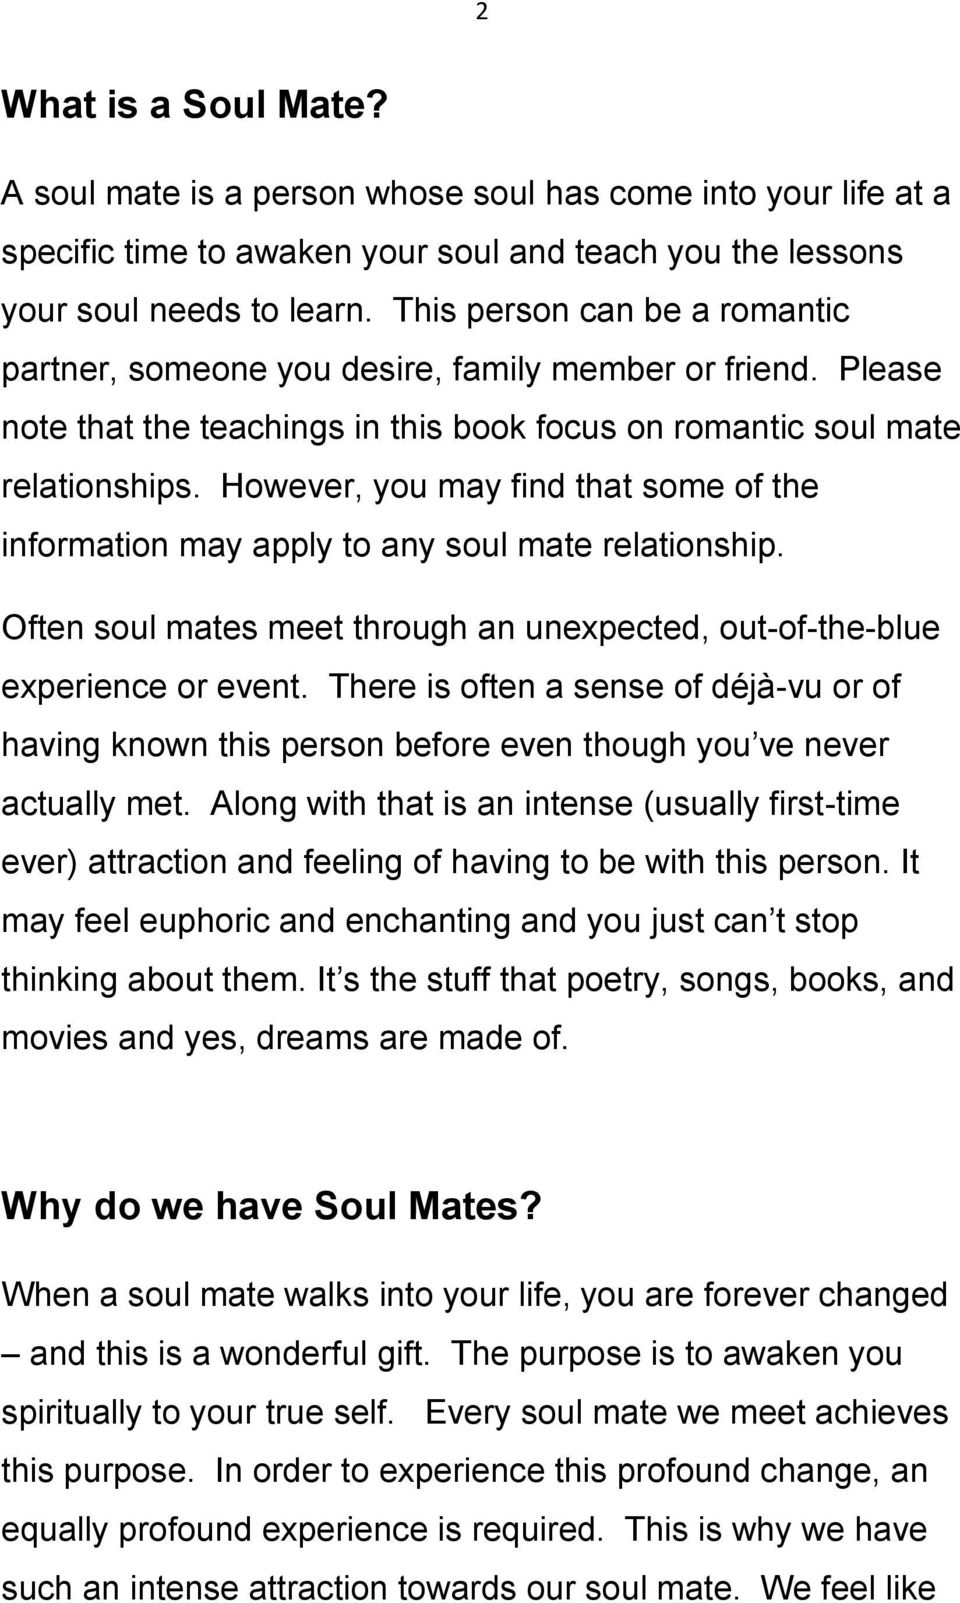 However, you may find that some of the information may apply to any soul mate relationship. Often soul mates meet through an unexpected, out-of-the-blue experience or event.